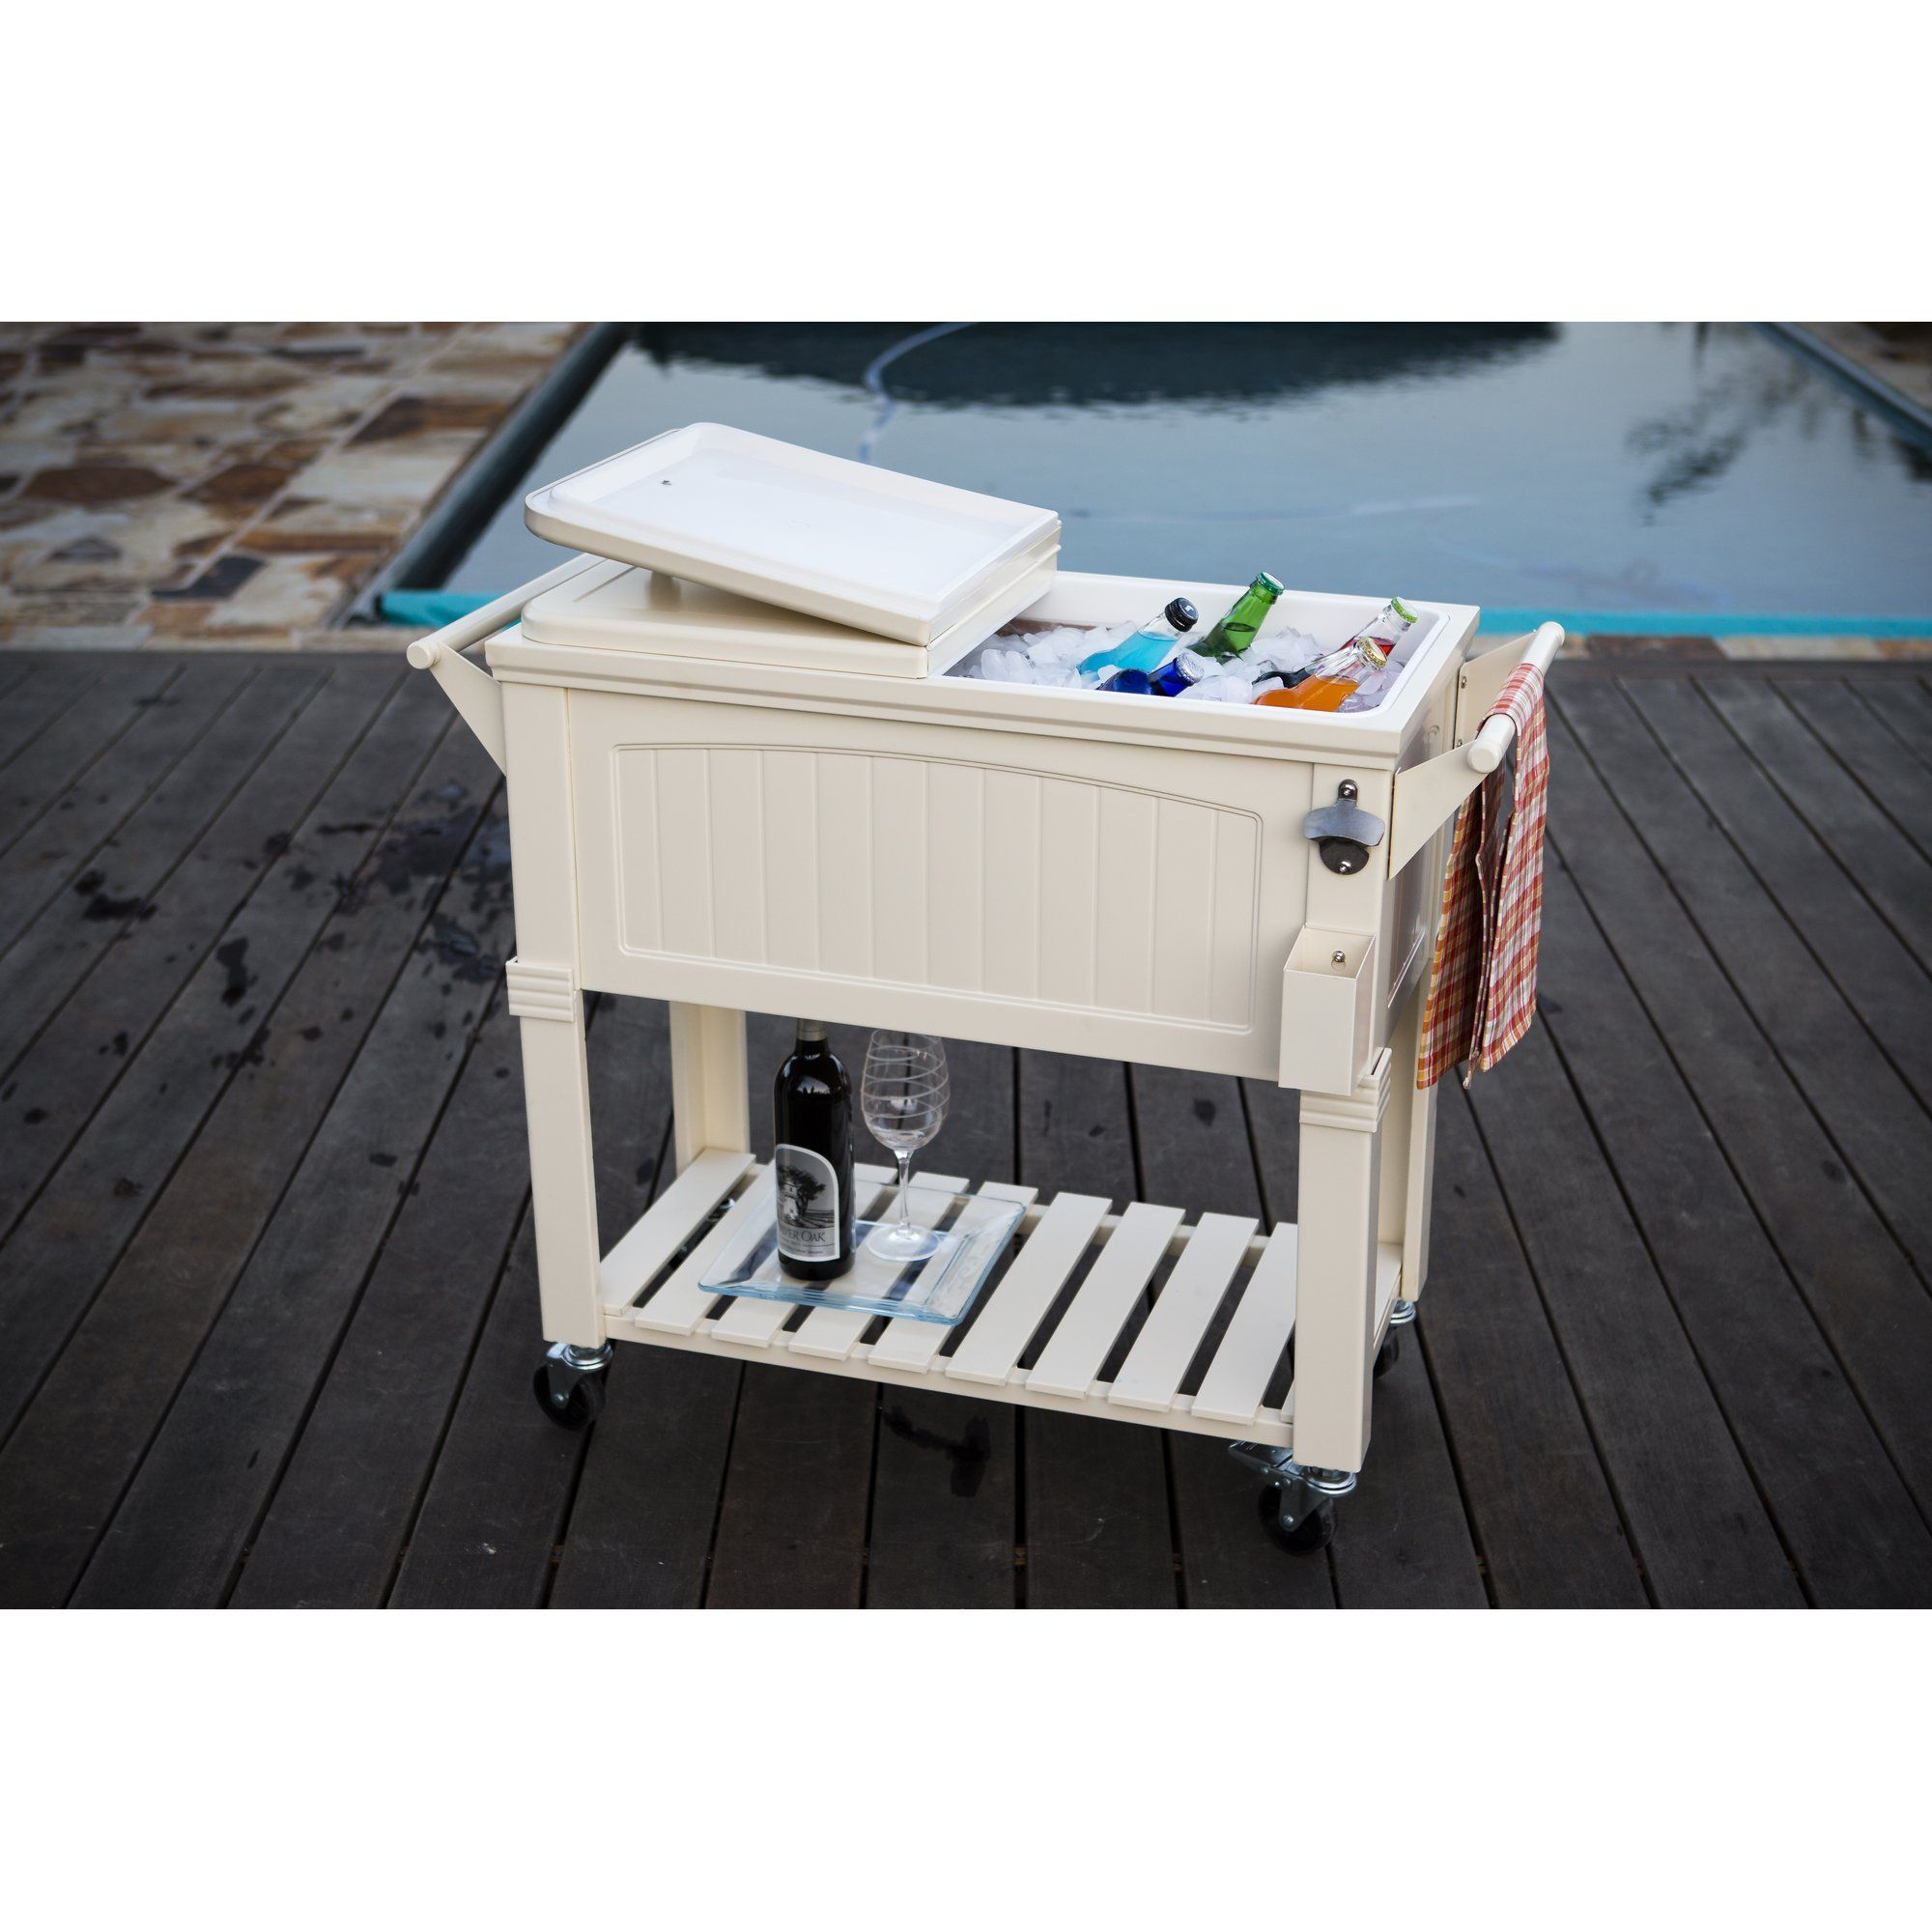 Outdoor Coolers and Ice Chests Beachfront Decor